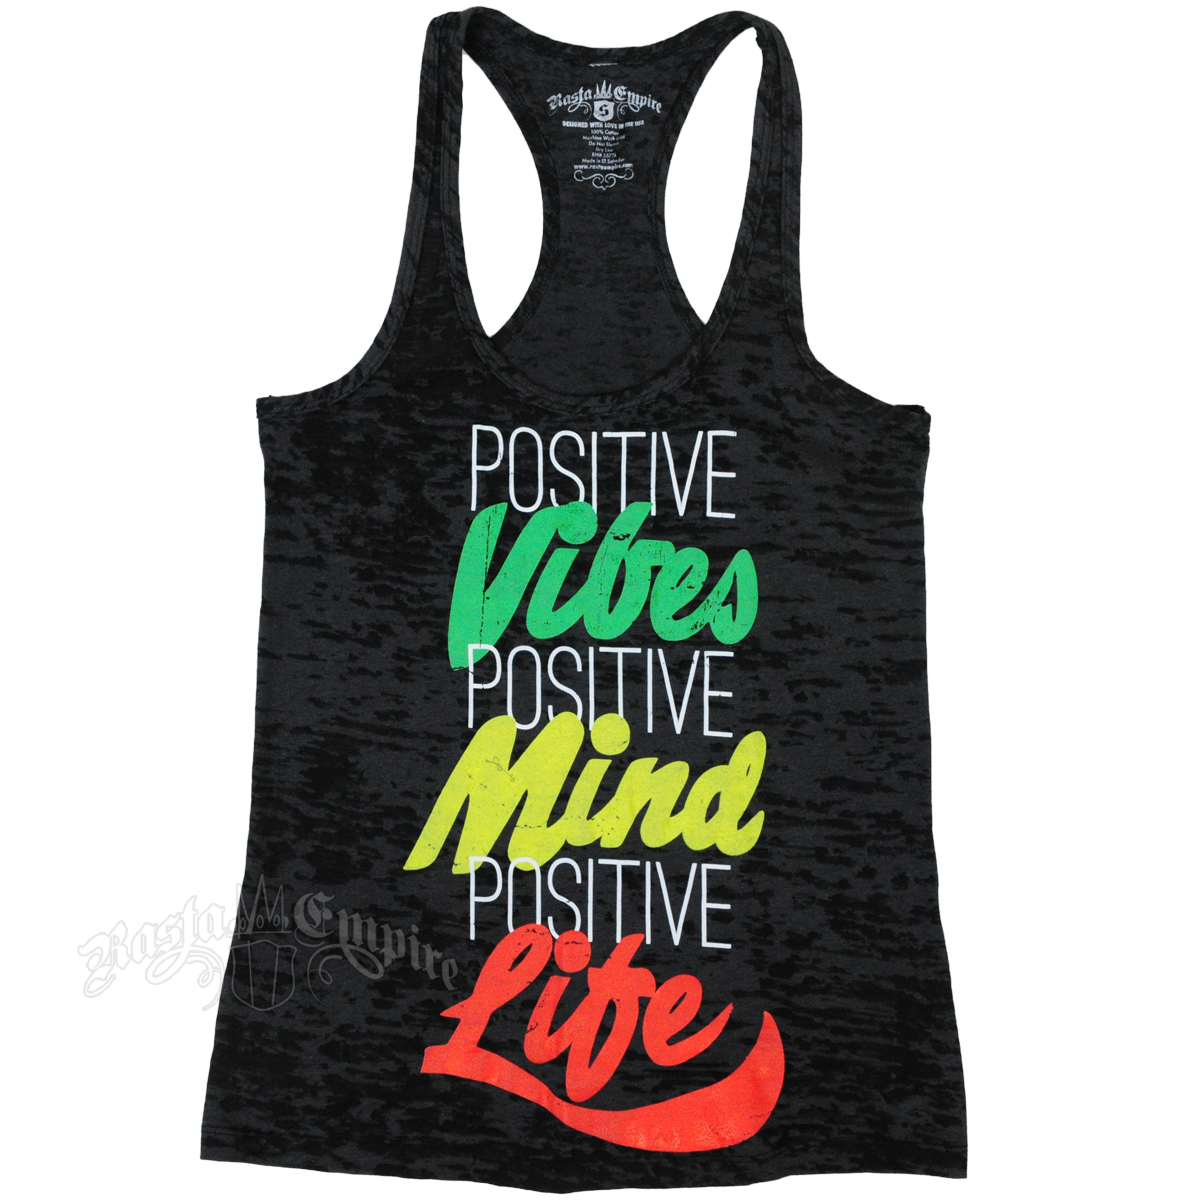 Rastaempire Positive Life Black Burnout Tank Top Women S